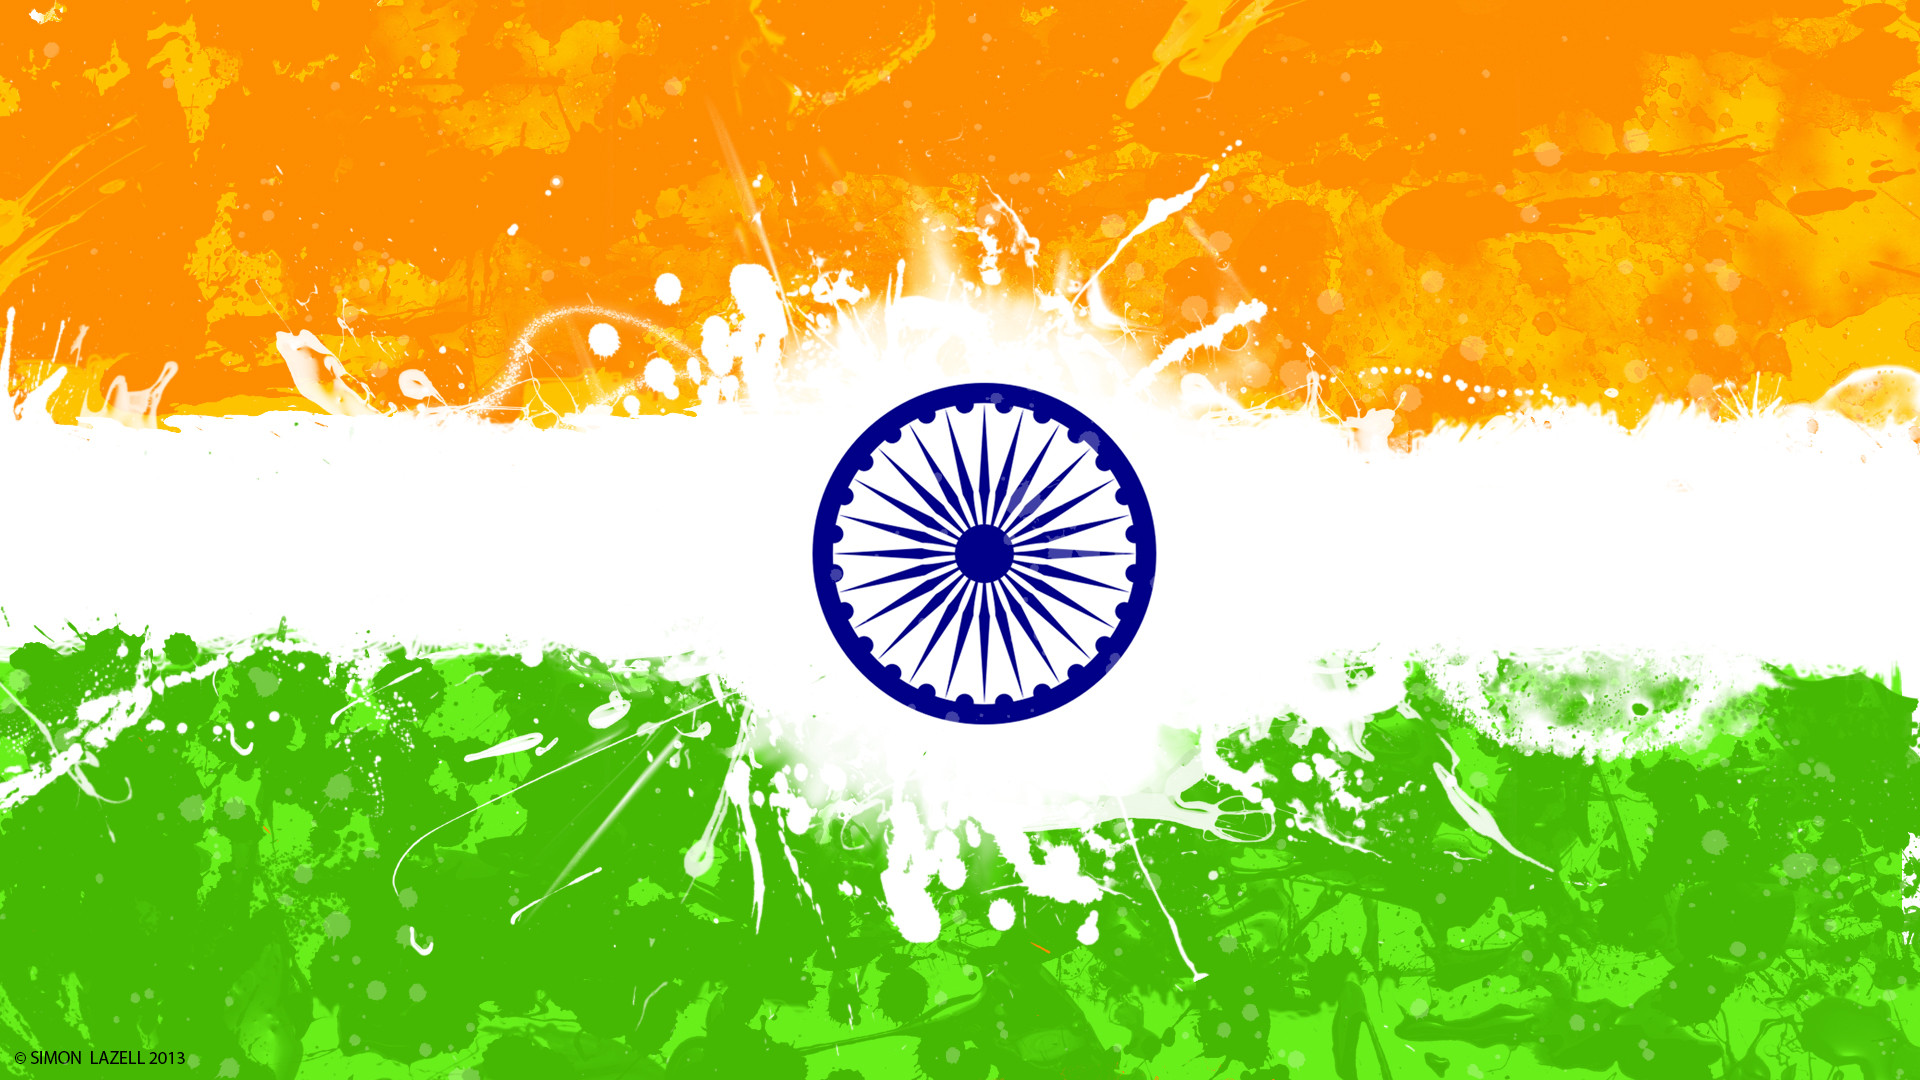 wallpapers images download indian flag wallpapers hd images 1920x1080